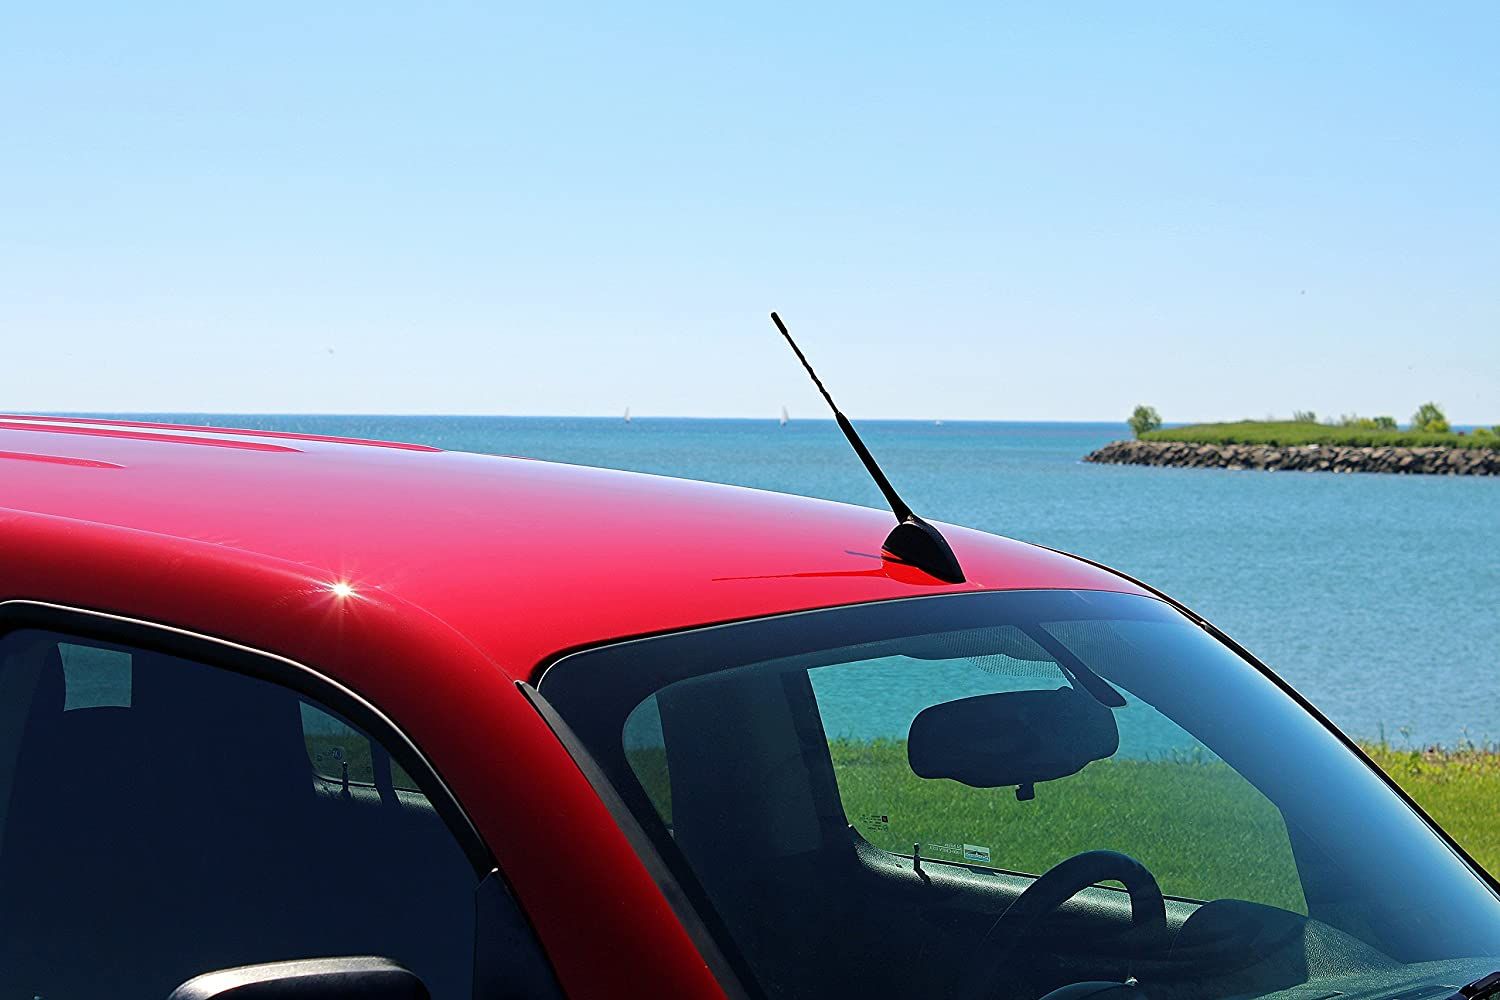 1998-2010 8 Inch Screw-On Antenna is Compatible with Volkswagen Beetle AntennaMastsRus